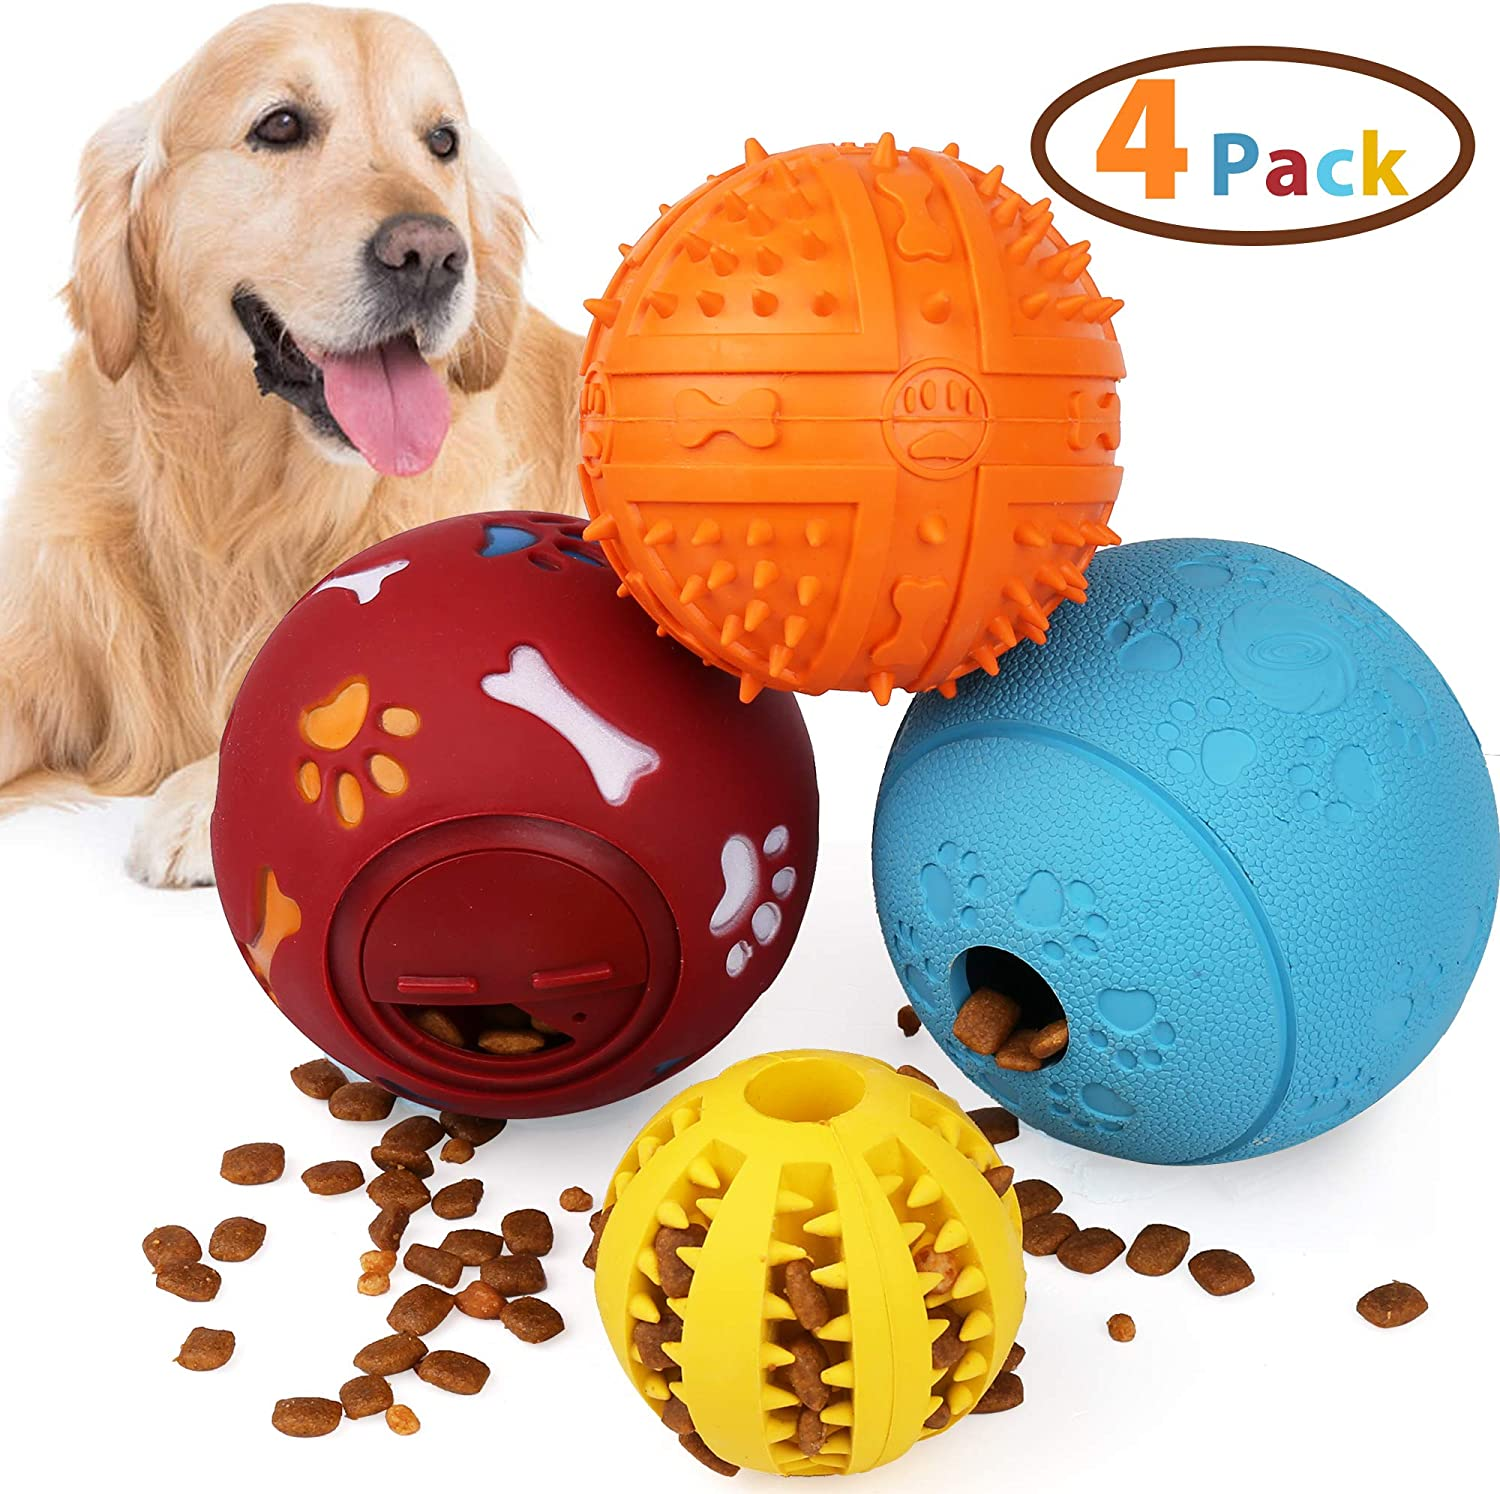 PrimePets 4Pack IQ Treat Ball, Fun Interactive Food Dispensing Dog Toys, Dog Puzzle Chew Toys, Non-Toxic Natural Rubber Dog Chew Toys, Interactive Dog Toys for Tooth Cleaning, Chewing, Playing